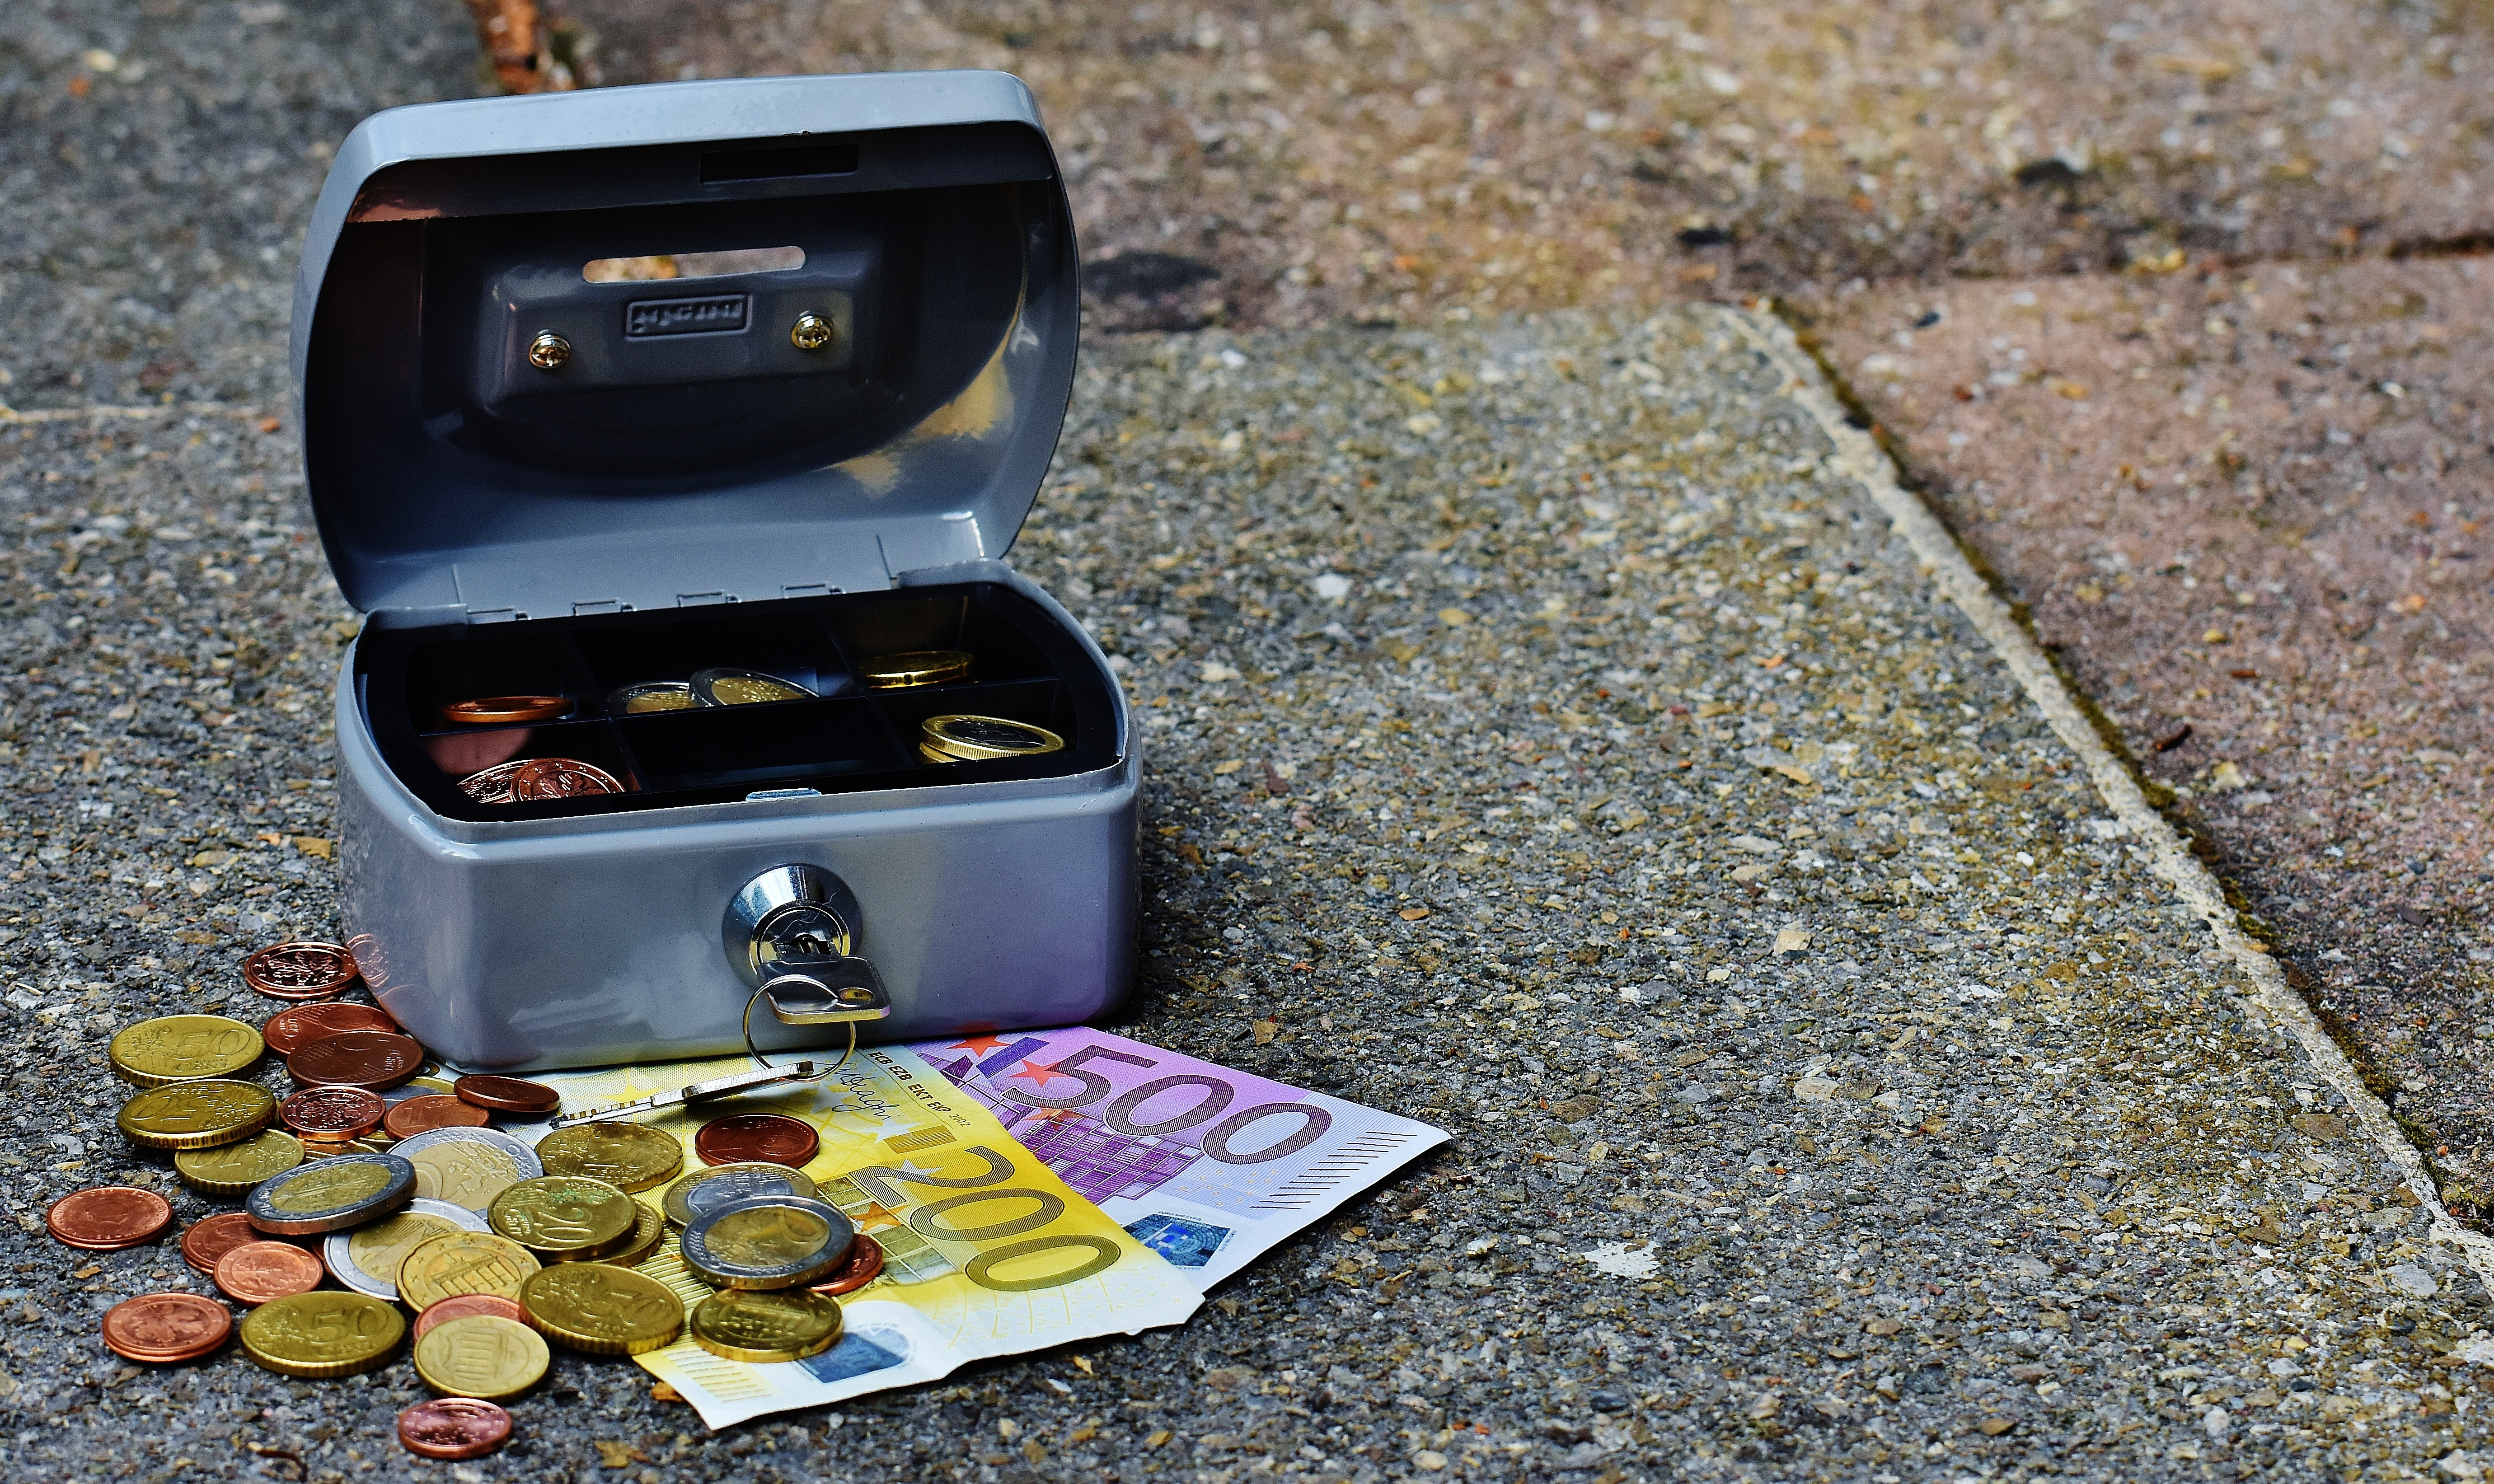 Gray Storage Box With Coins and Banknotes on Pavement